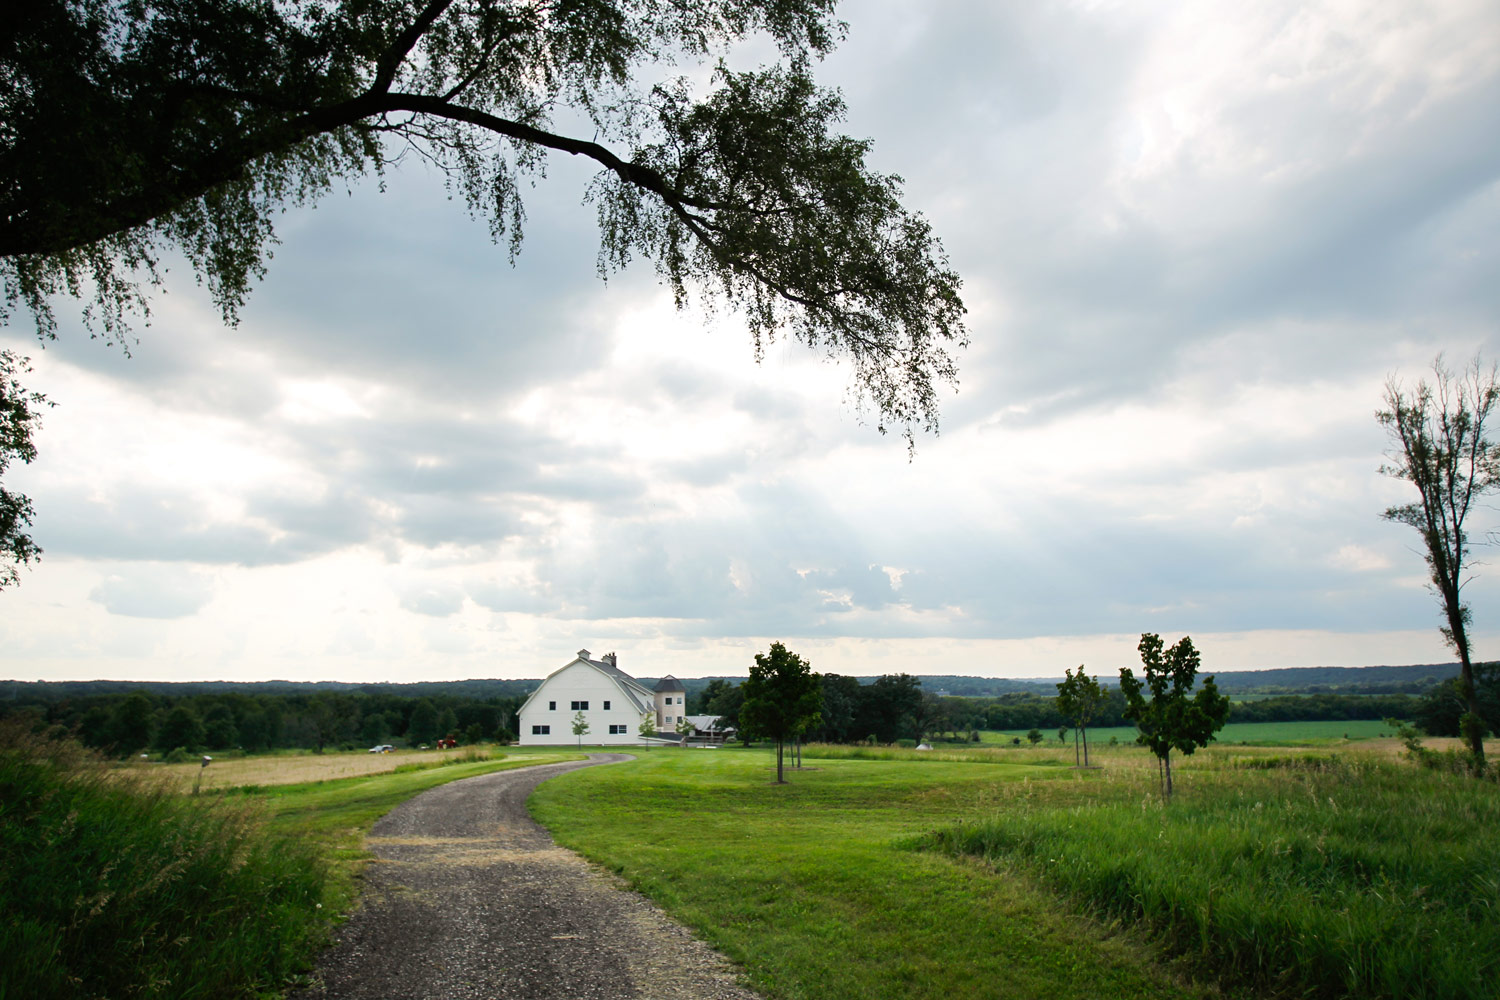 event-photographer-madison-wi-dane-county-gala-fundraiser-ruthie-hauge-photography-farm-to-table 01.jpg